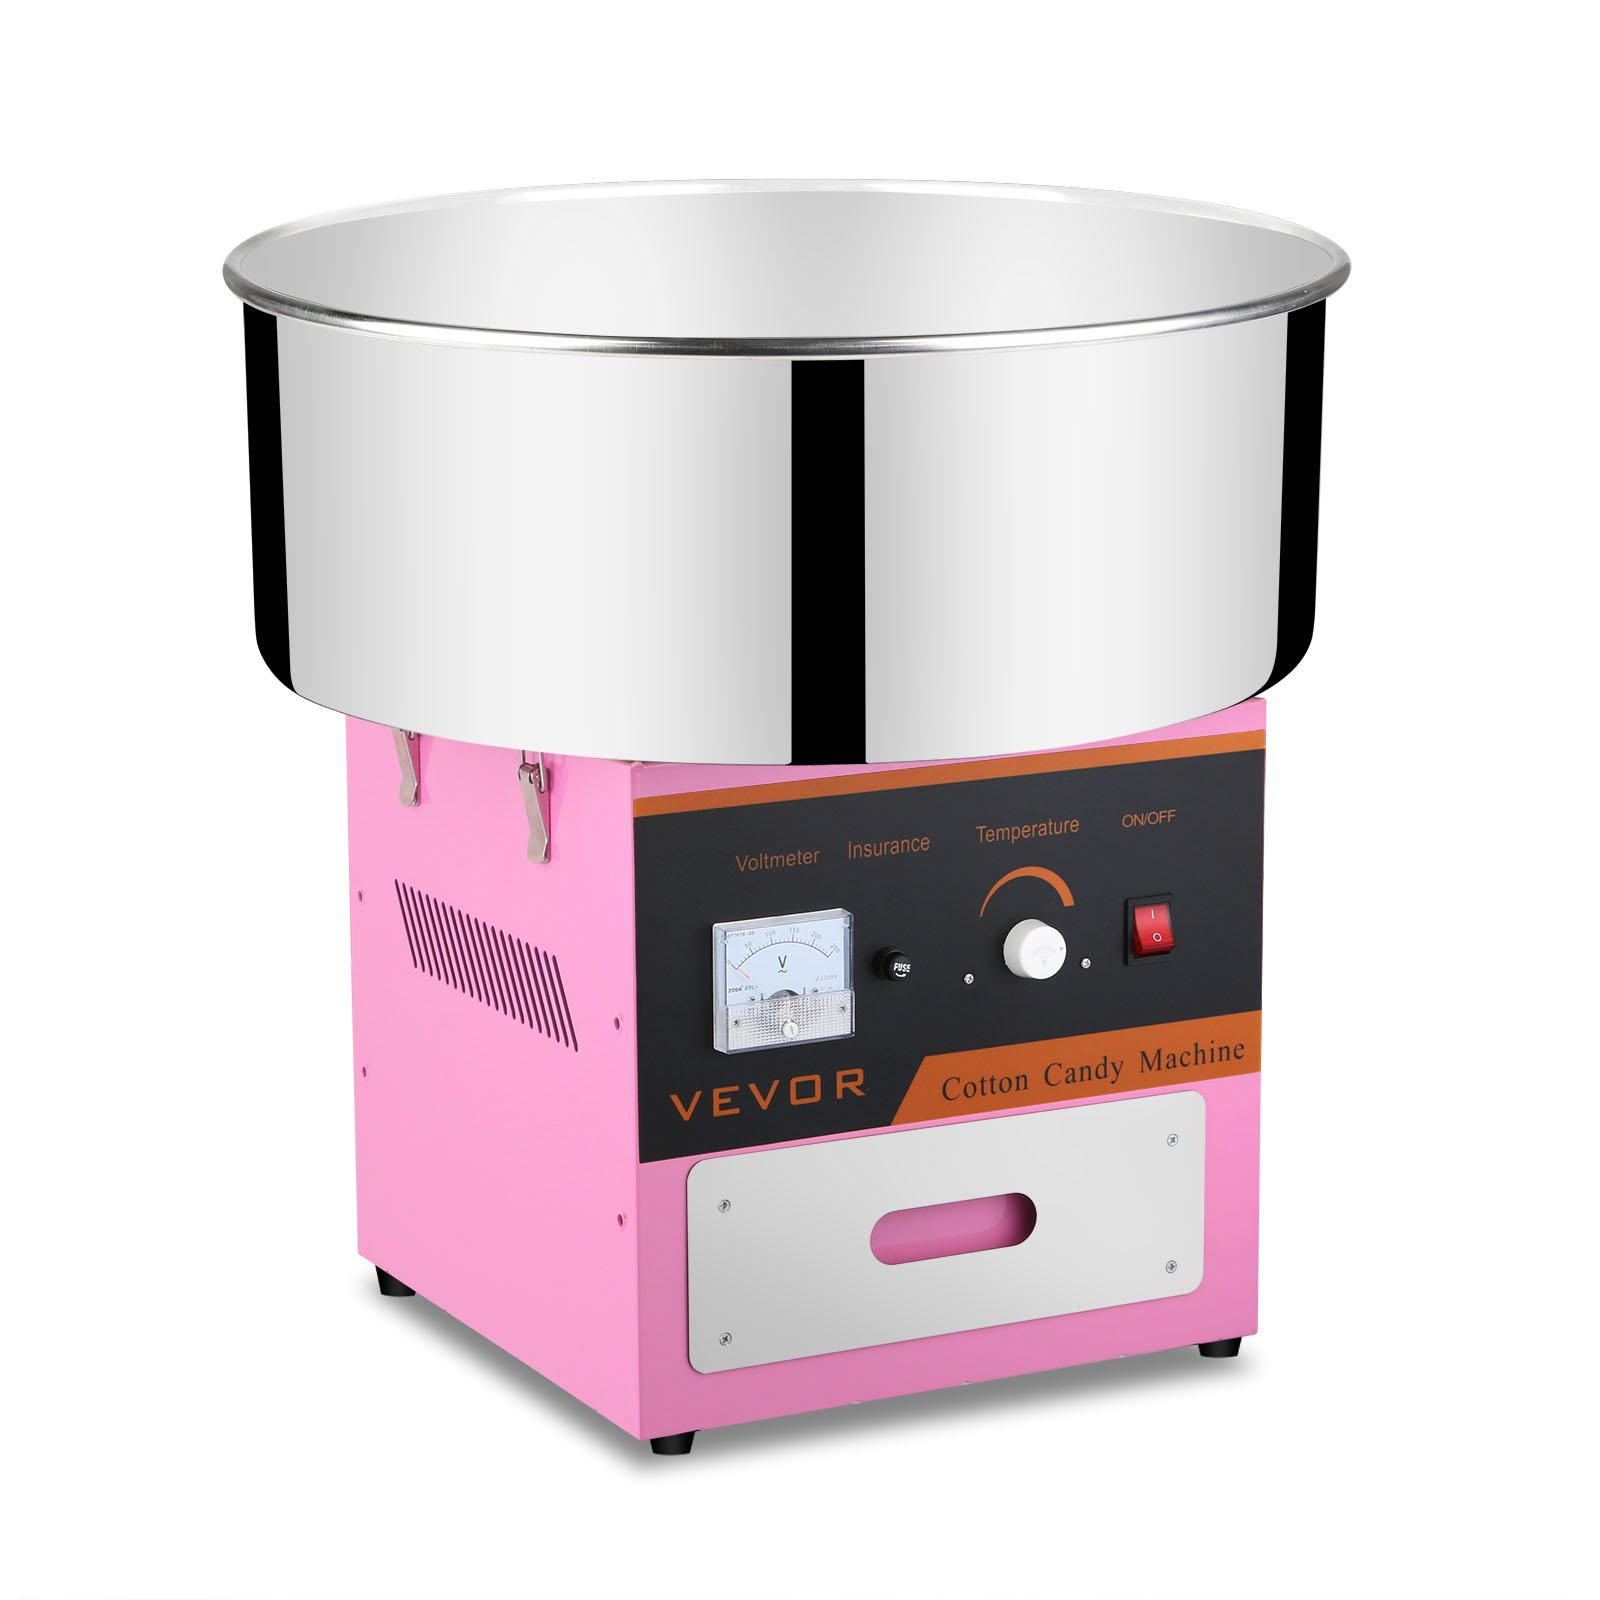 OrangeA Cotton Candy Machine Commercial Cotton Candy Machine Candy Floss Maker 1030W Electric Cotton Candy Maker Food Grade Stainless Steel Pink without Cover(Cotton Candy Machine)